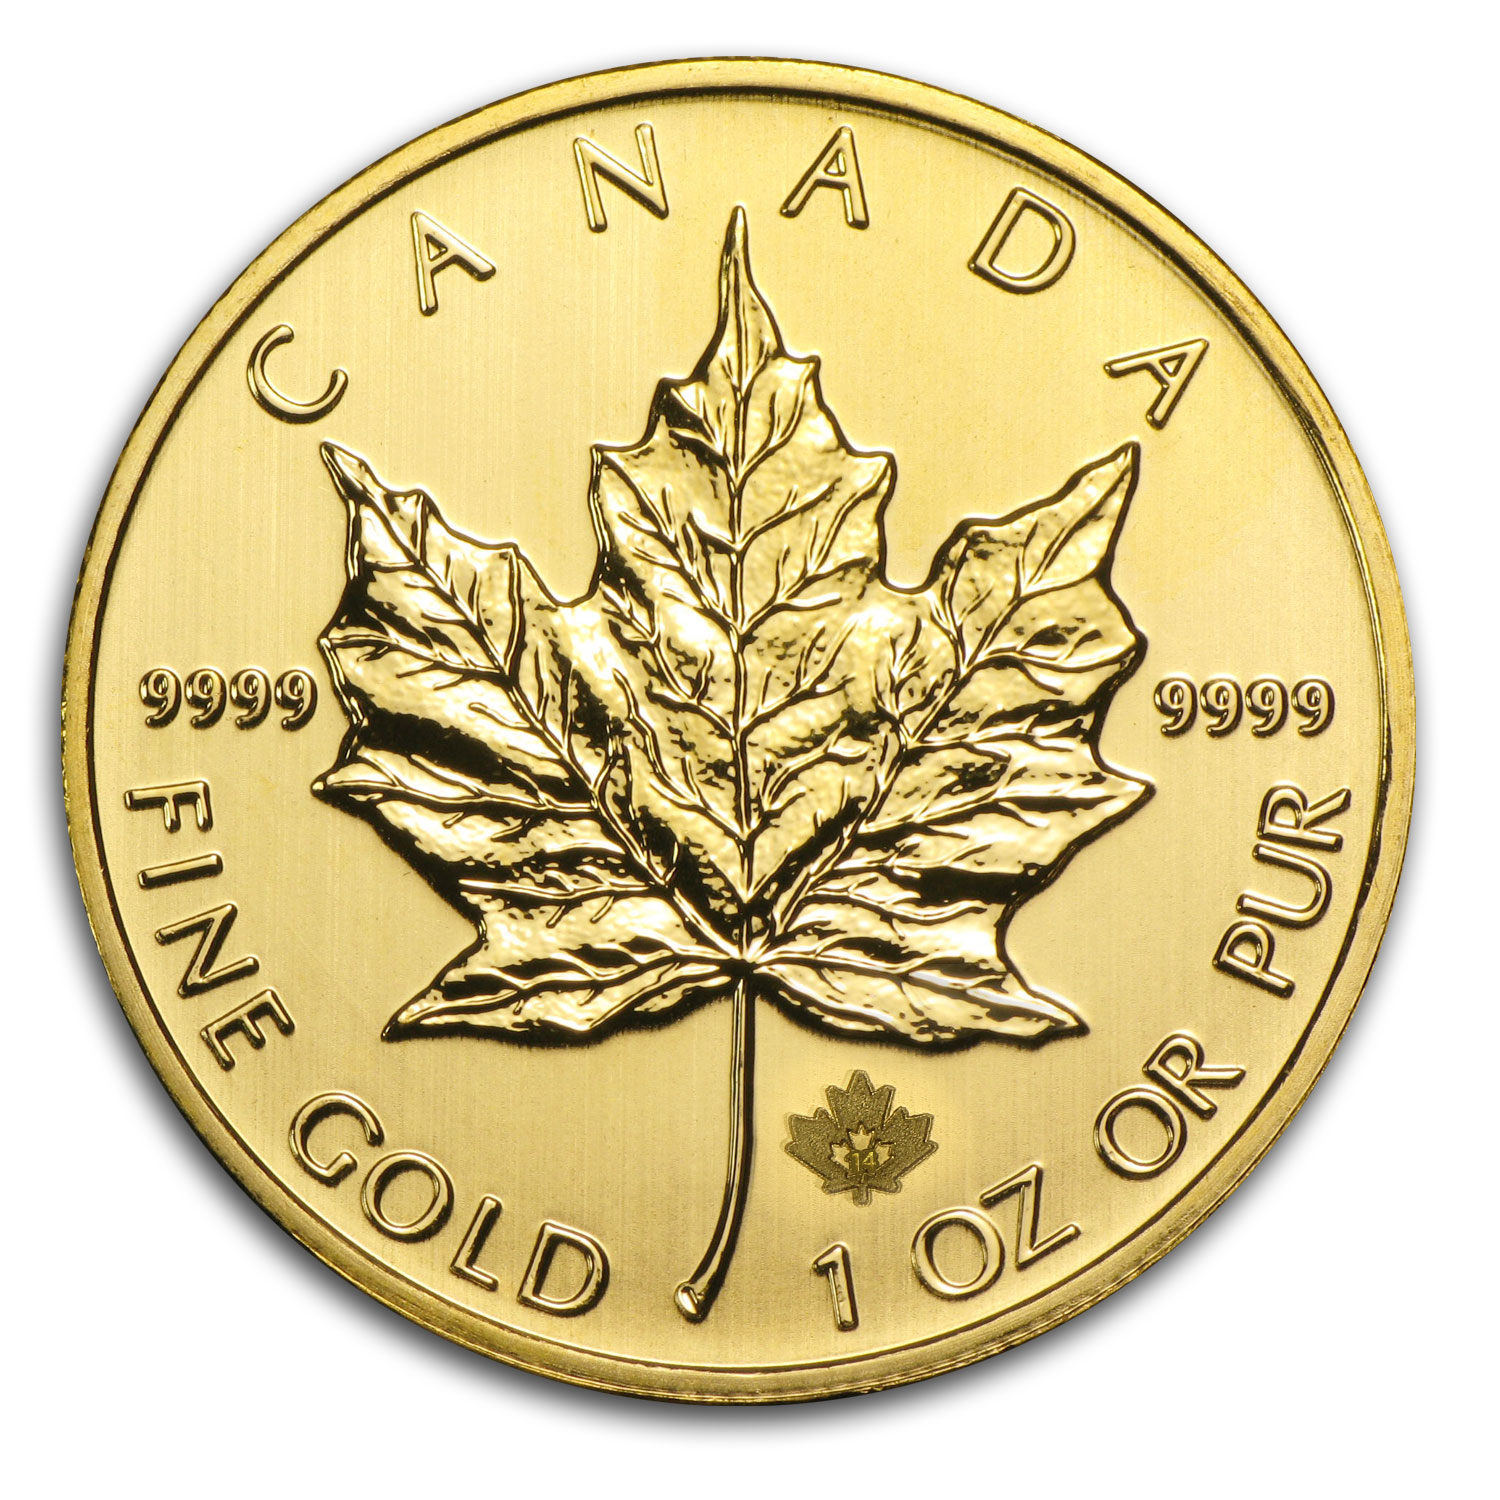 2014 1 oz Gold Canadian Maple Leaf BU